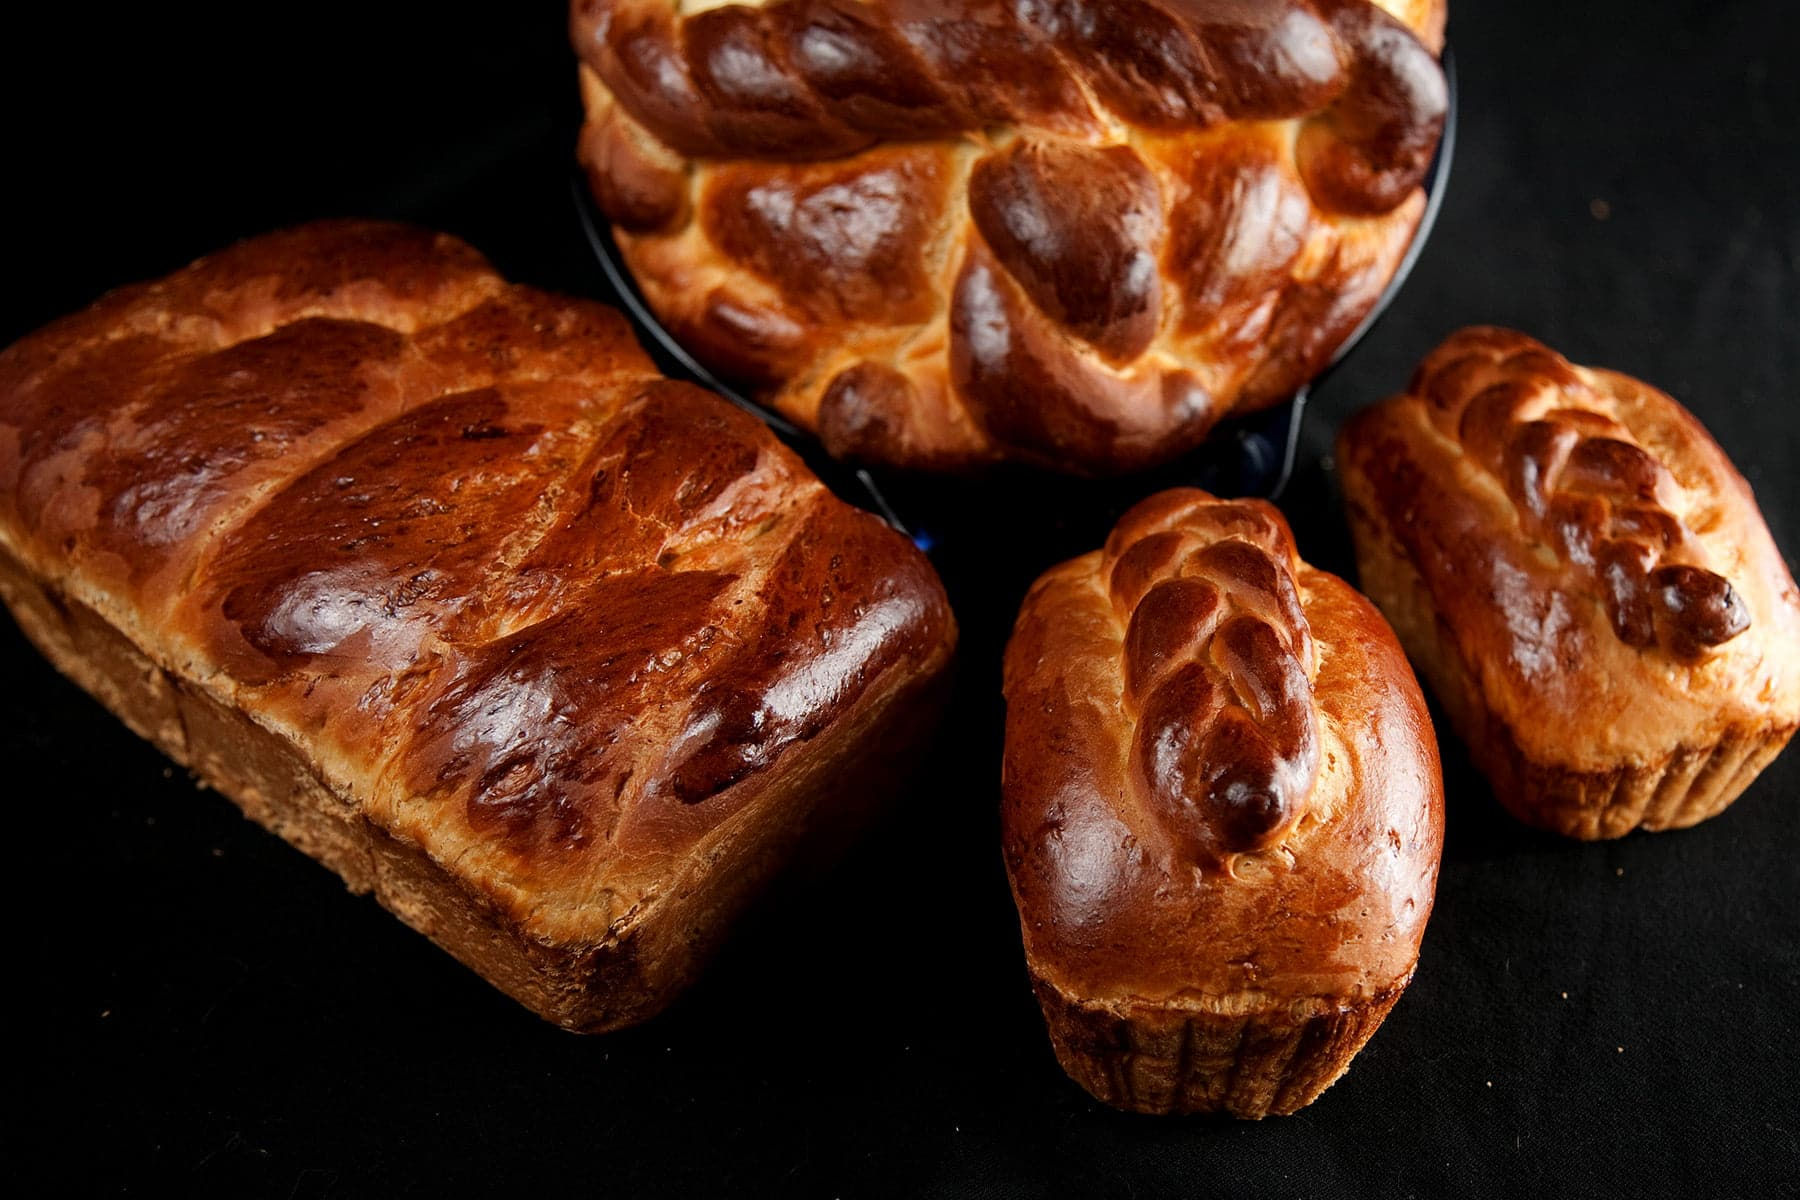 4 loaves of braided and twisted Paska - a Ukrainian Easter bread - on a black background.